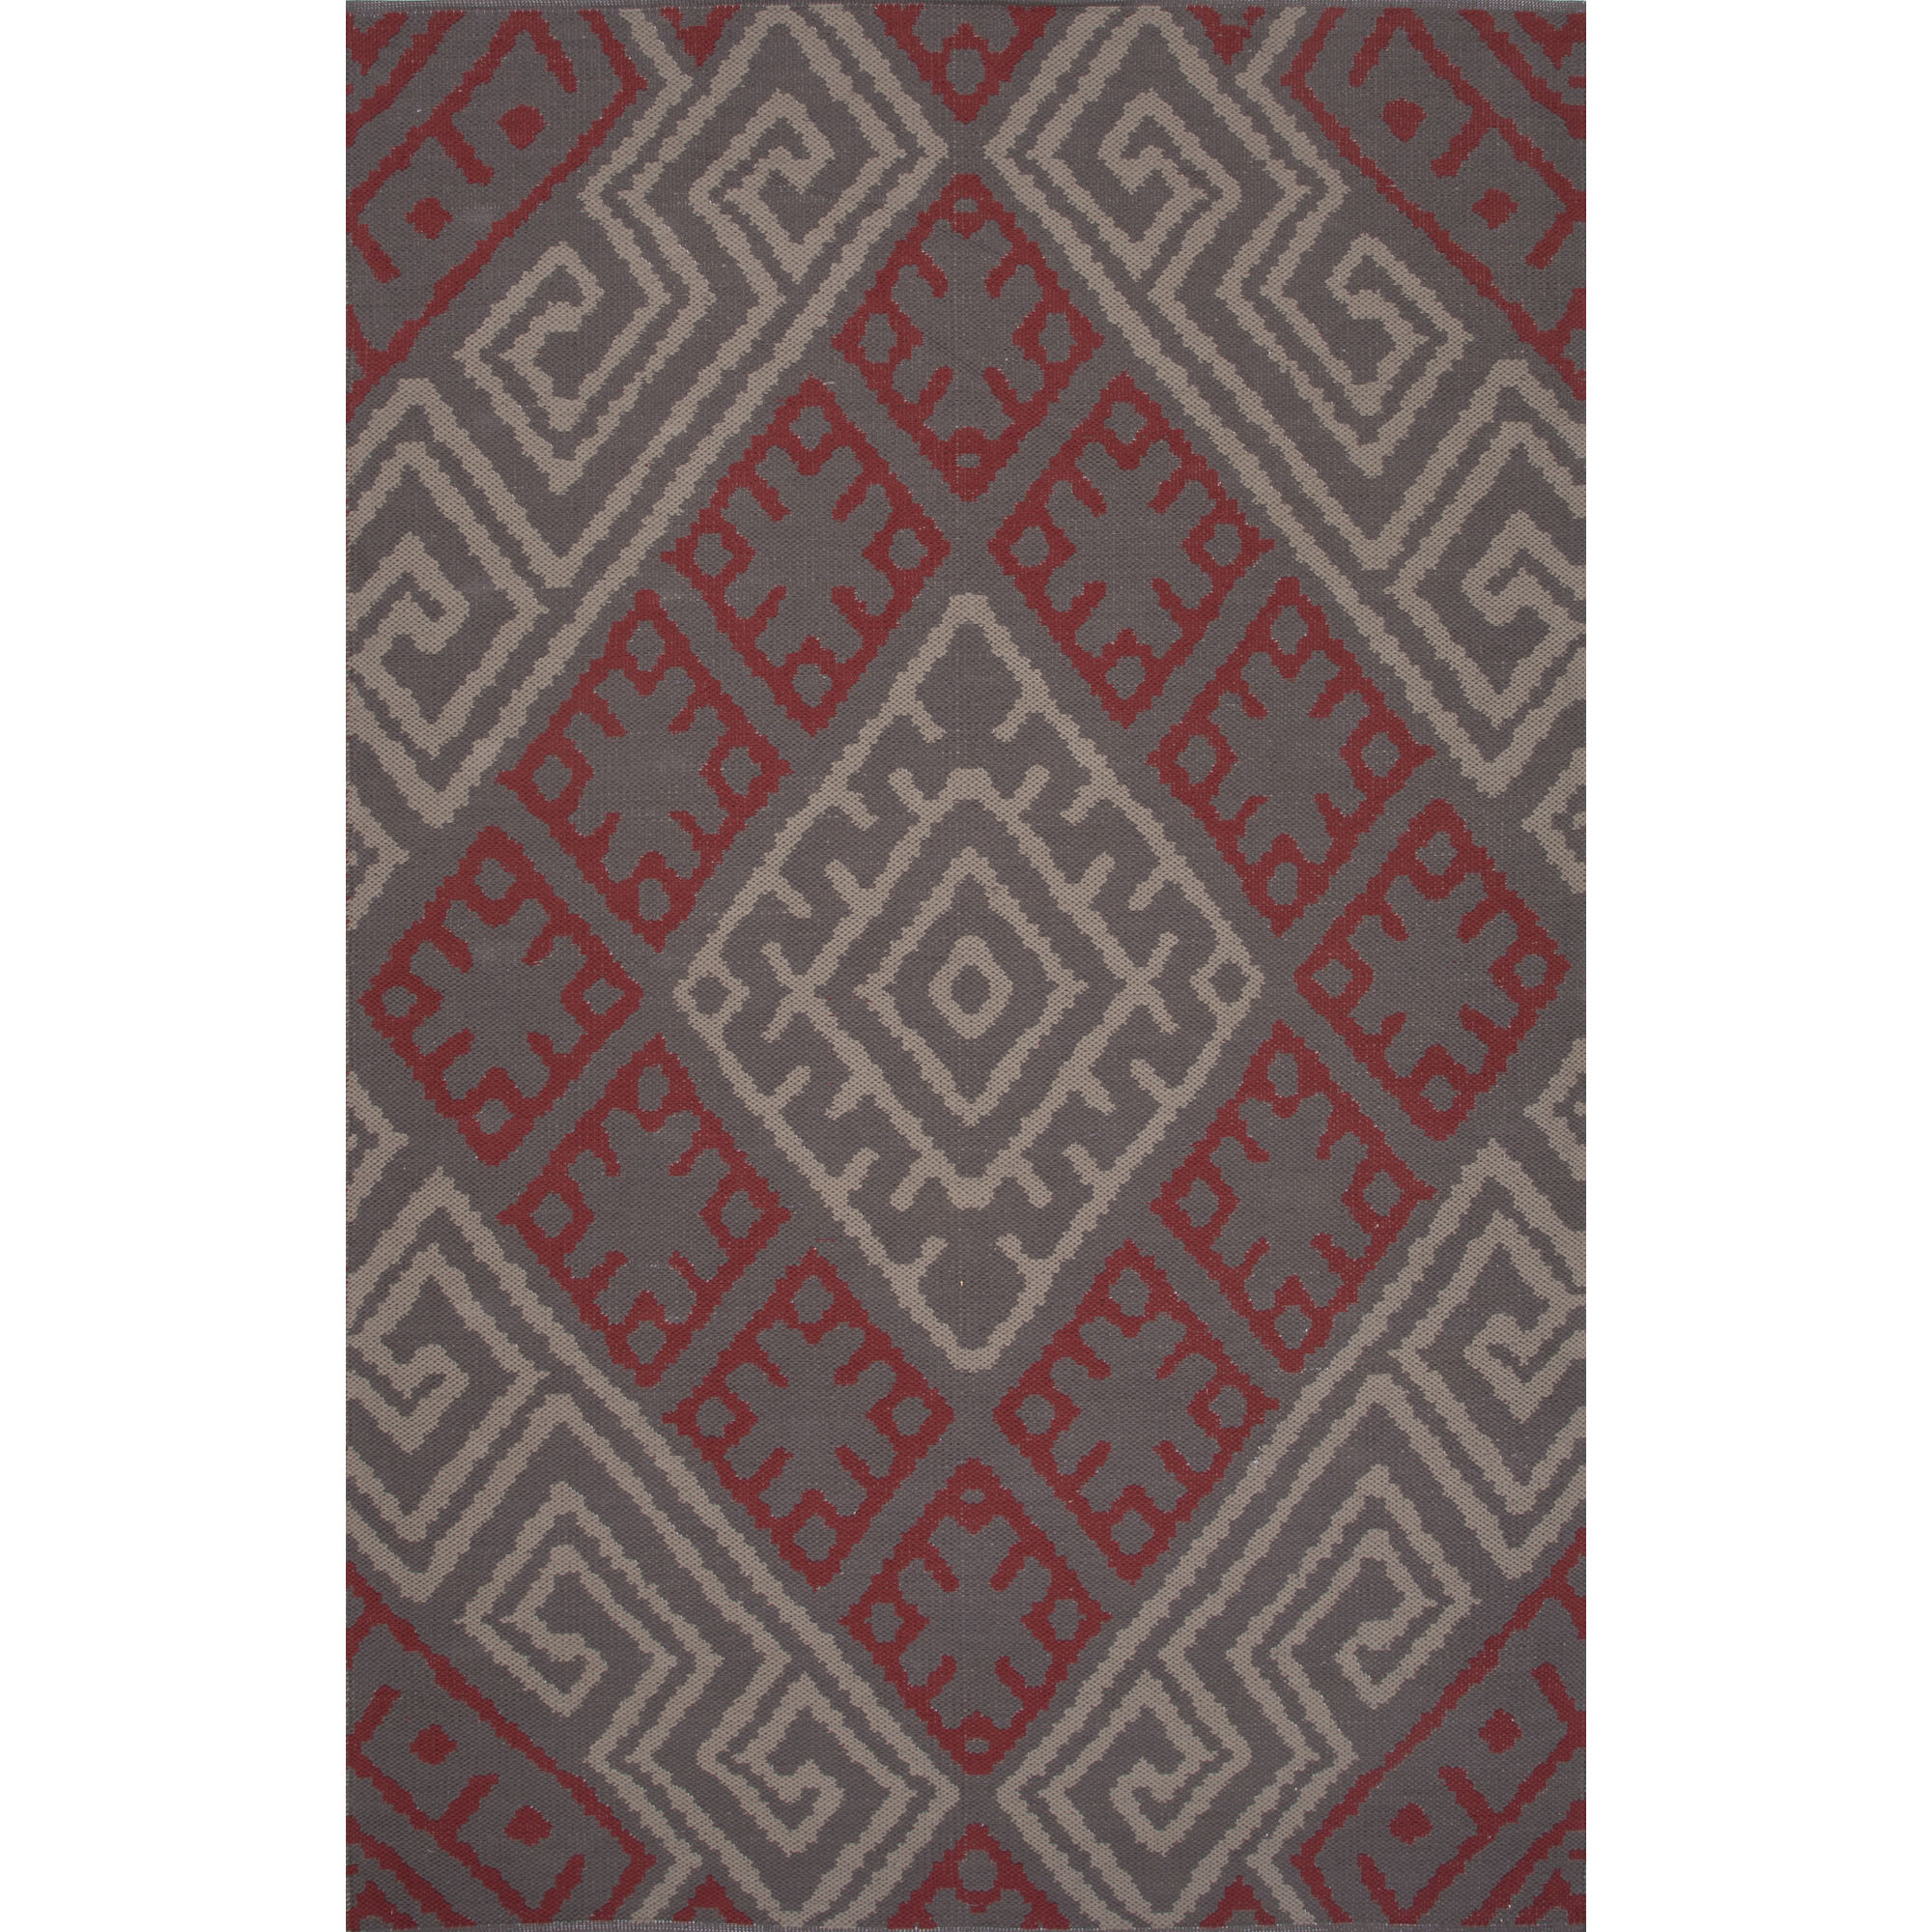 JAIPUR Rugs Traditions Modern Cotton Flat Weave 2 x 3 Rug - Item Number: RUG122234